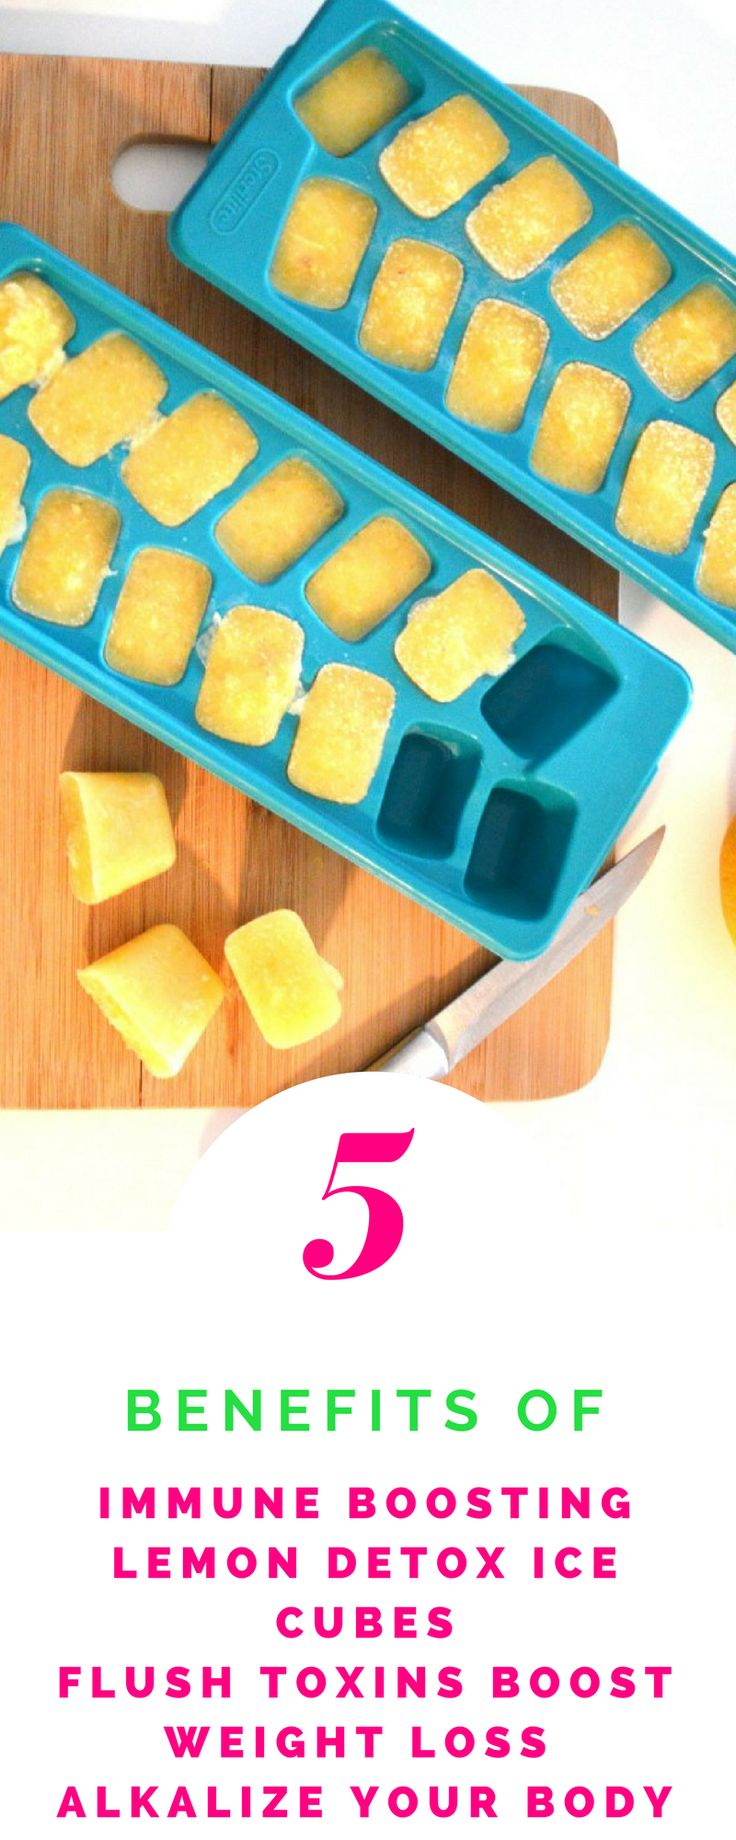 Detox your liver and cleanse your system with detox lemon ice cubes. Lose belly bloat, gain energy while losing weight. Easily lose water weight. Add into your detox drink.